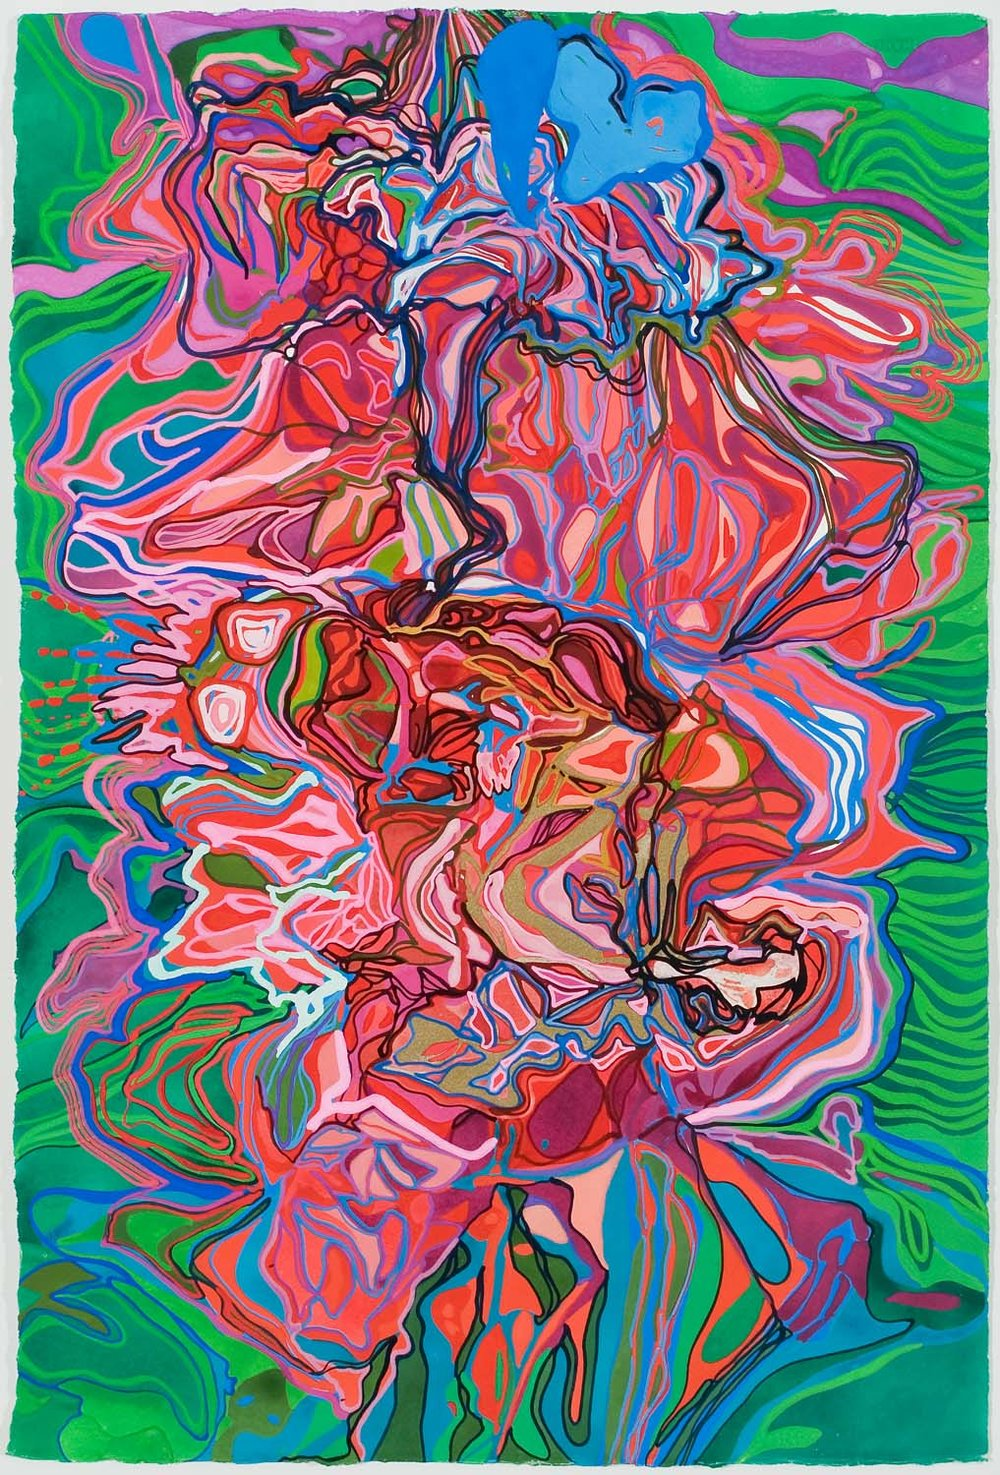 untitled au, tbd 30 x 23 inches gouache on paper 200-146